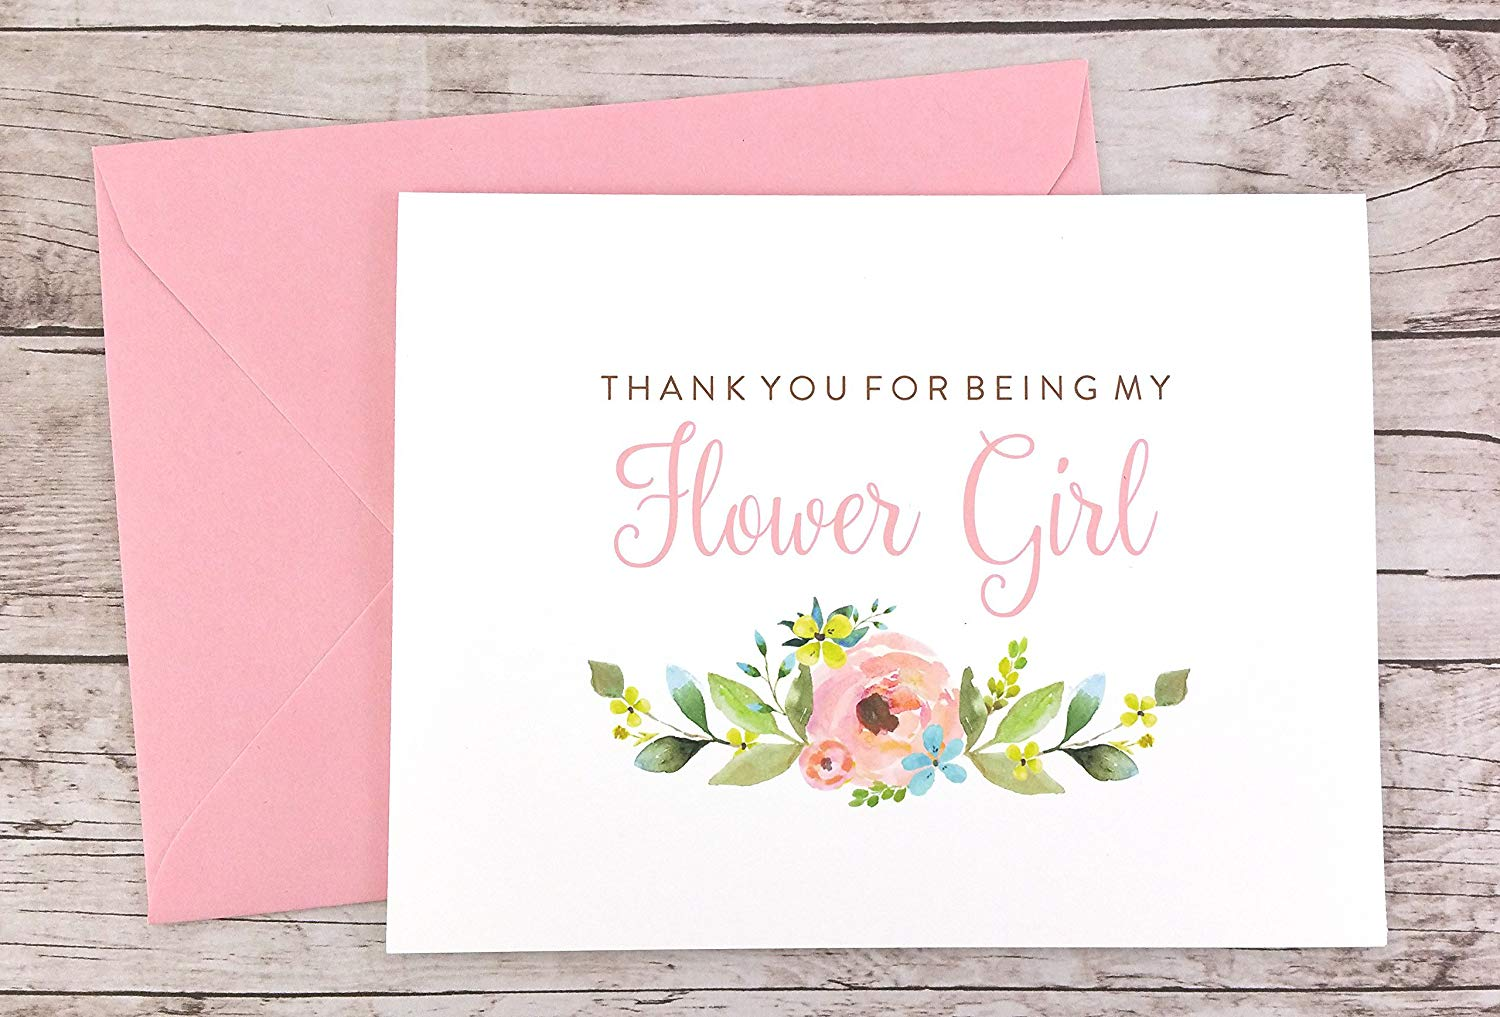 Thank You For Being My Flower Girl Card, Wedding Card, Flower Girl Thank You Card (FPS0013)